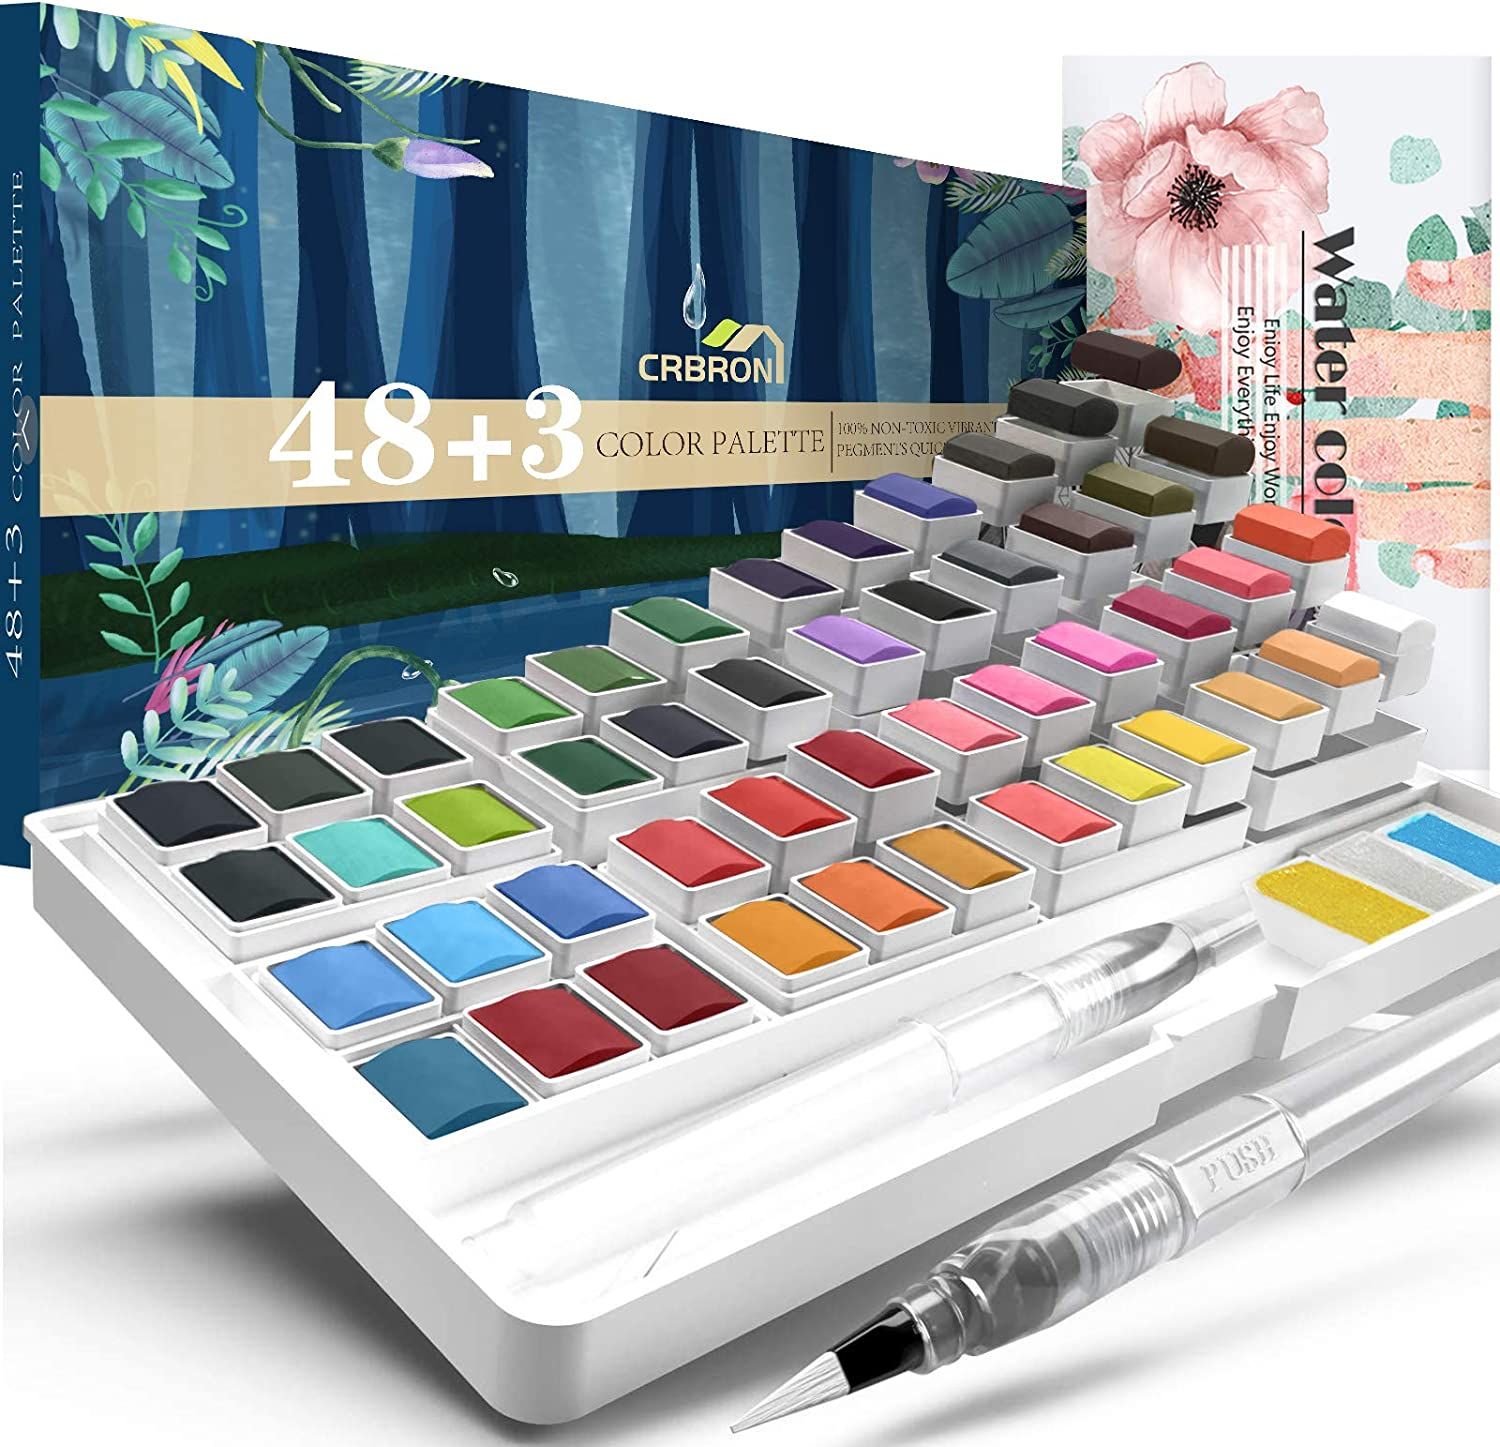 CRBRON Watercolor Palette with Bonus Paper Pad Includes 48 Premium Colors - 2 Refillable Water Blending Brush Pens - No Mess Storage Case - 15 Sheets of Water Color Paper - Portable Painting,multicolored